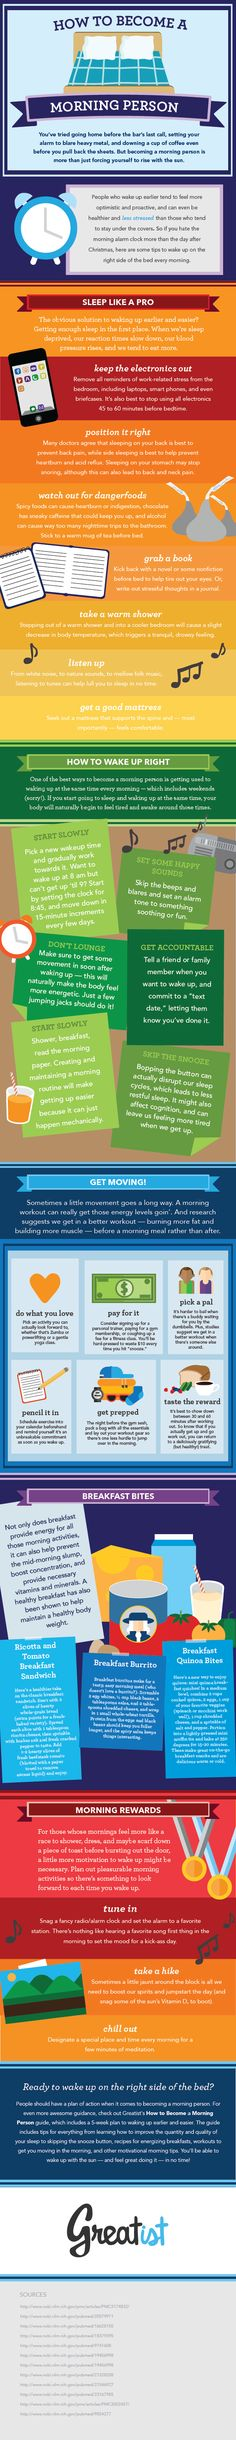 How to Become a Morning Person [INFOGRAPHIC] via @Greatist